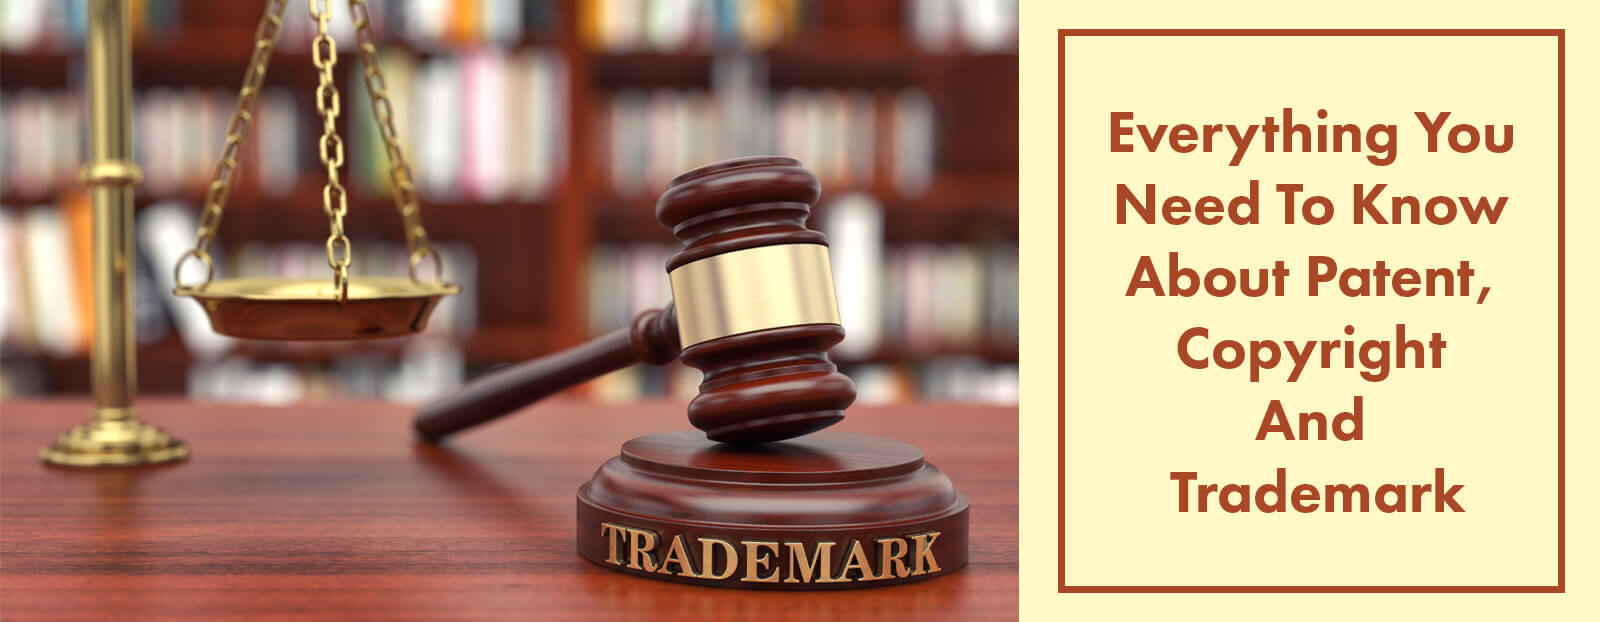 Everything You Need To Know About Patent, Copyright And Trademark